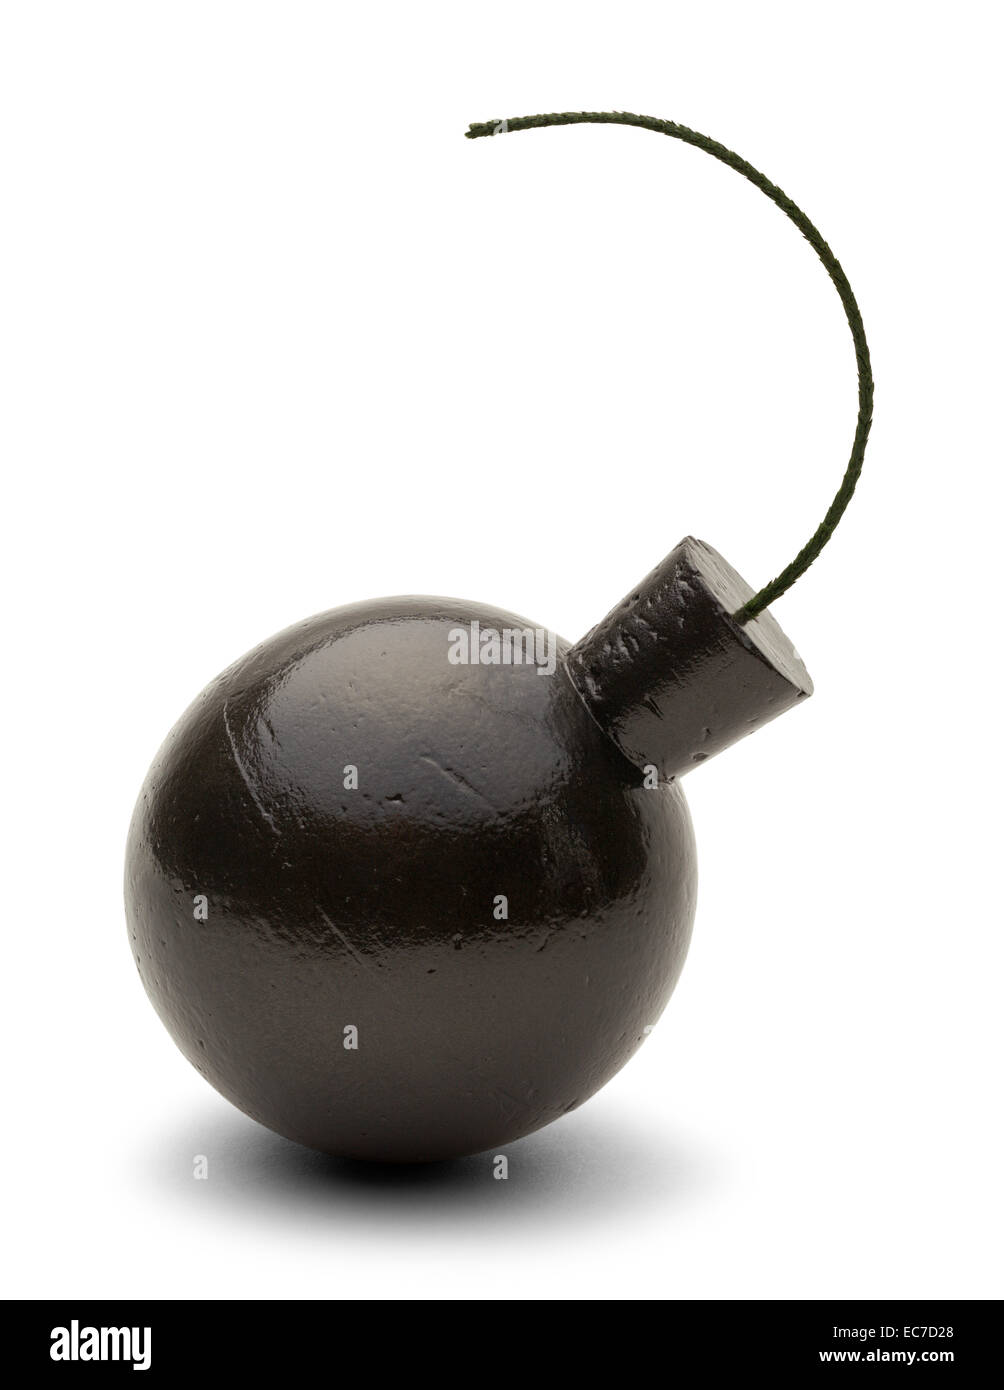 Round Metal Bomb with Fuse Isolated on White Background. - Stock Image